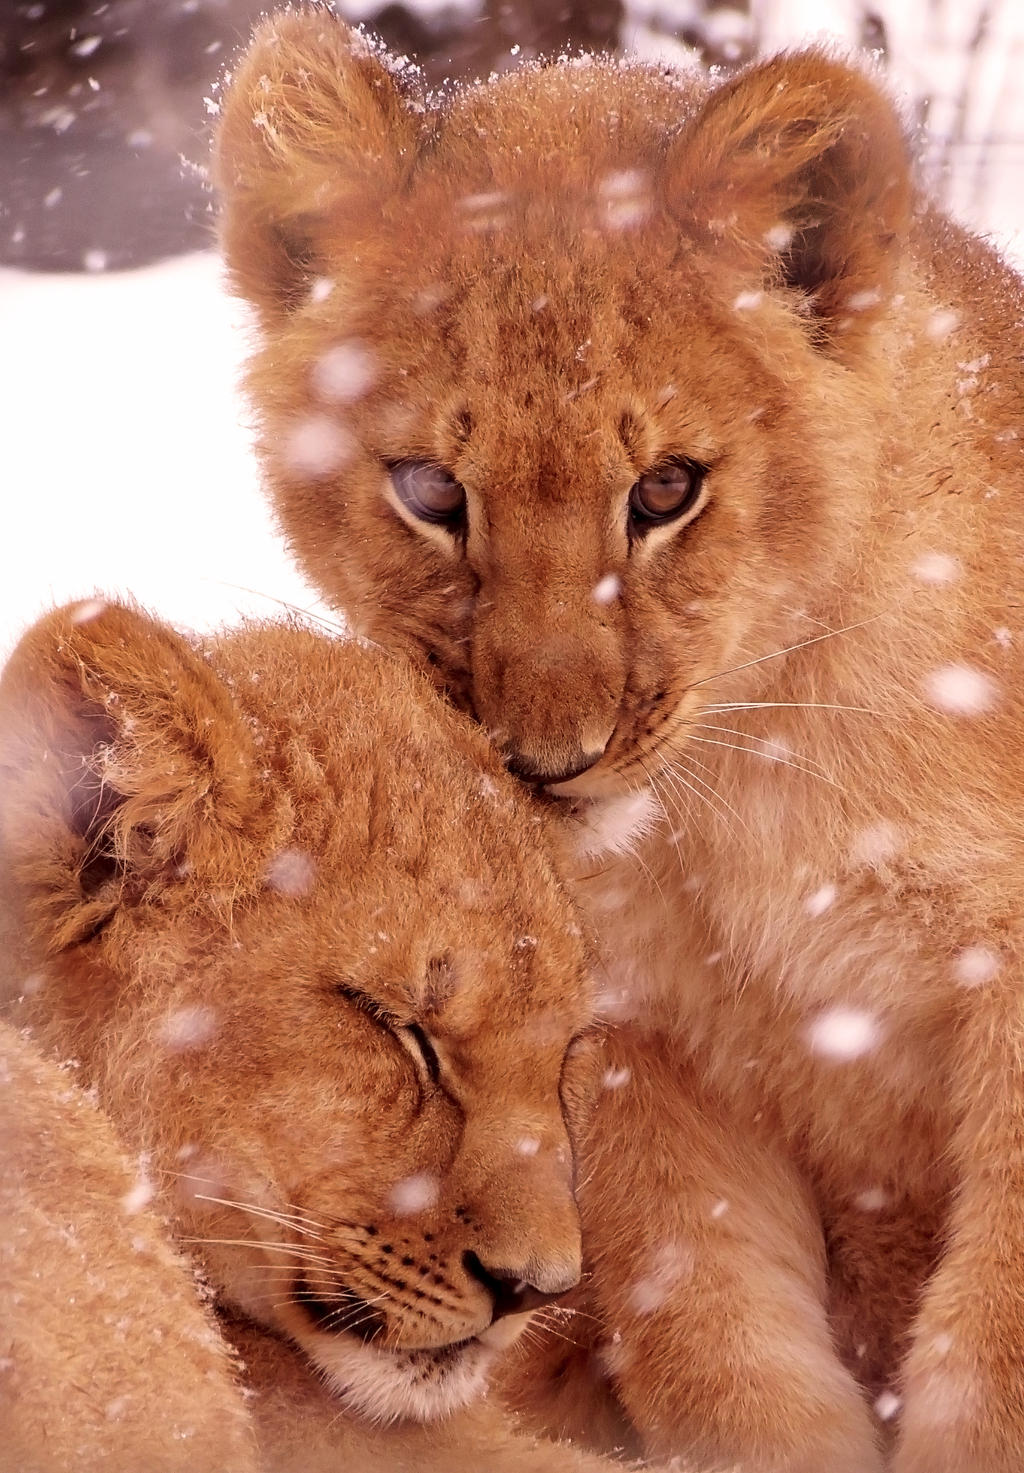 Lion Stock 39: Cubs by HOTNStock